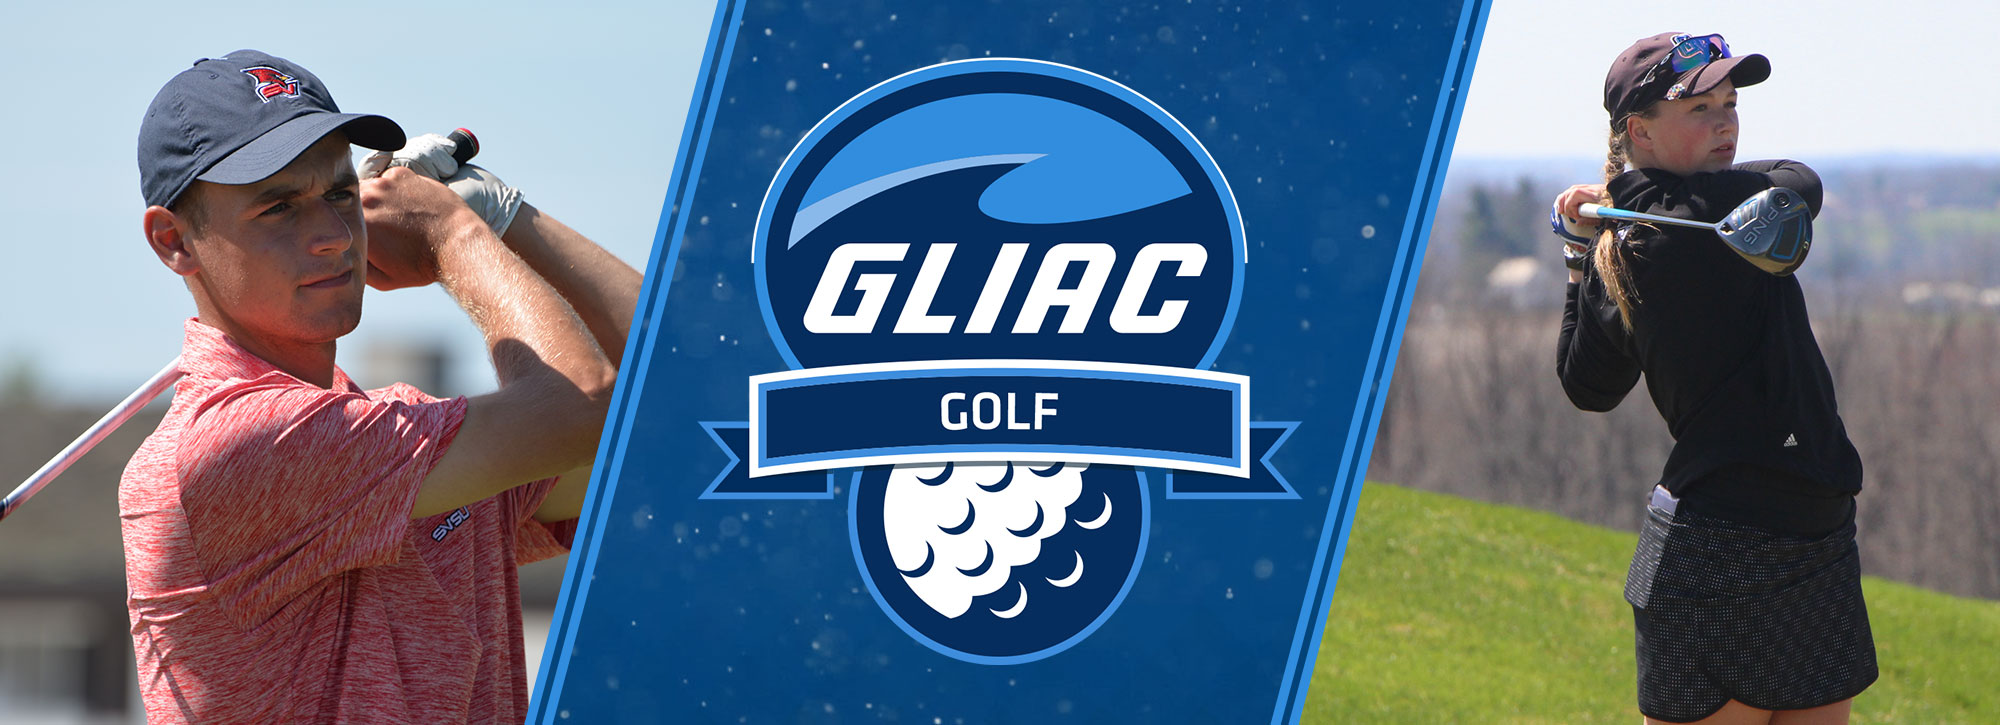 Saginaw Valley's Pumford, Grand Valley State's Reed Tabbed GLIAC Golfers of the Week